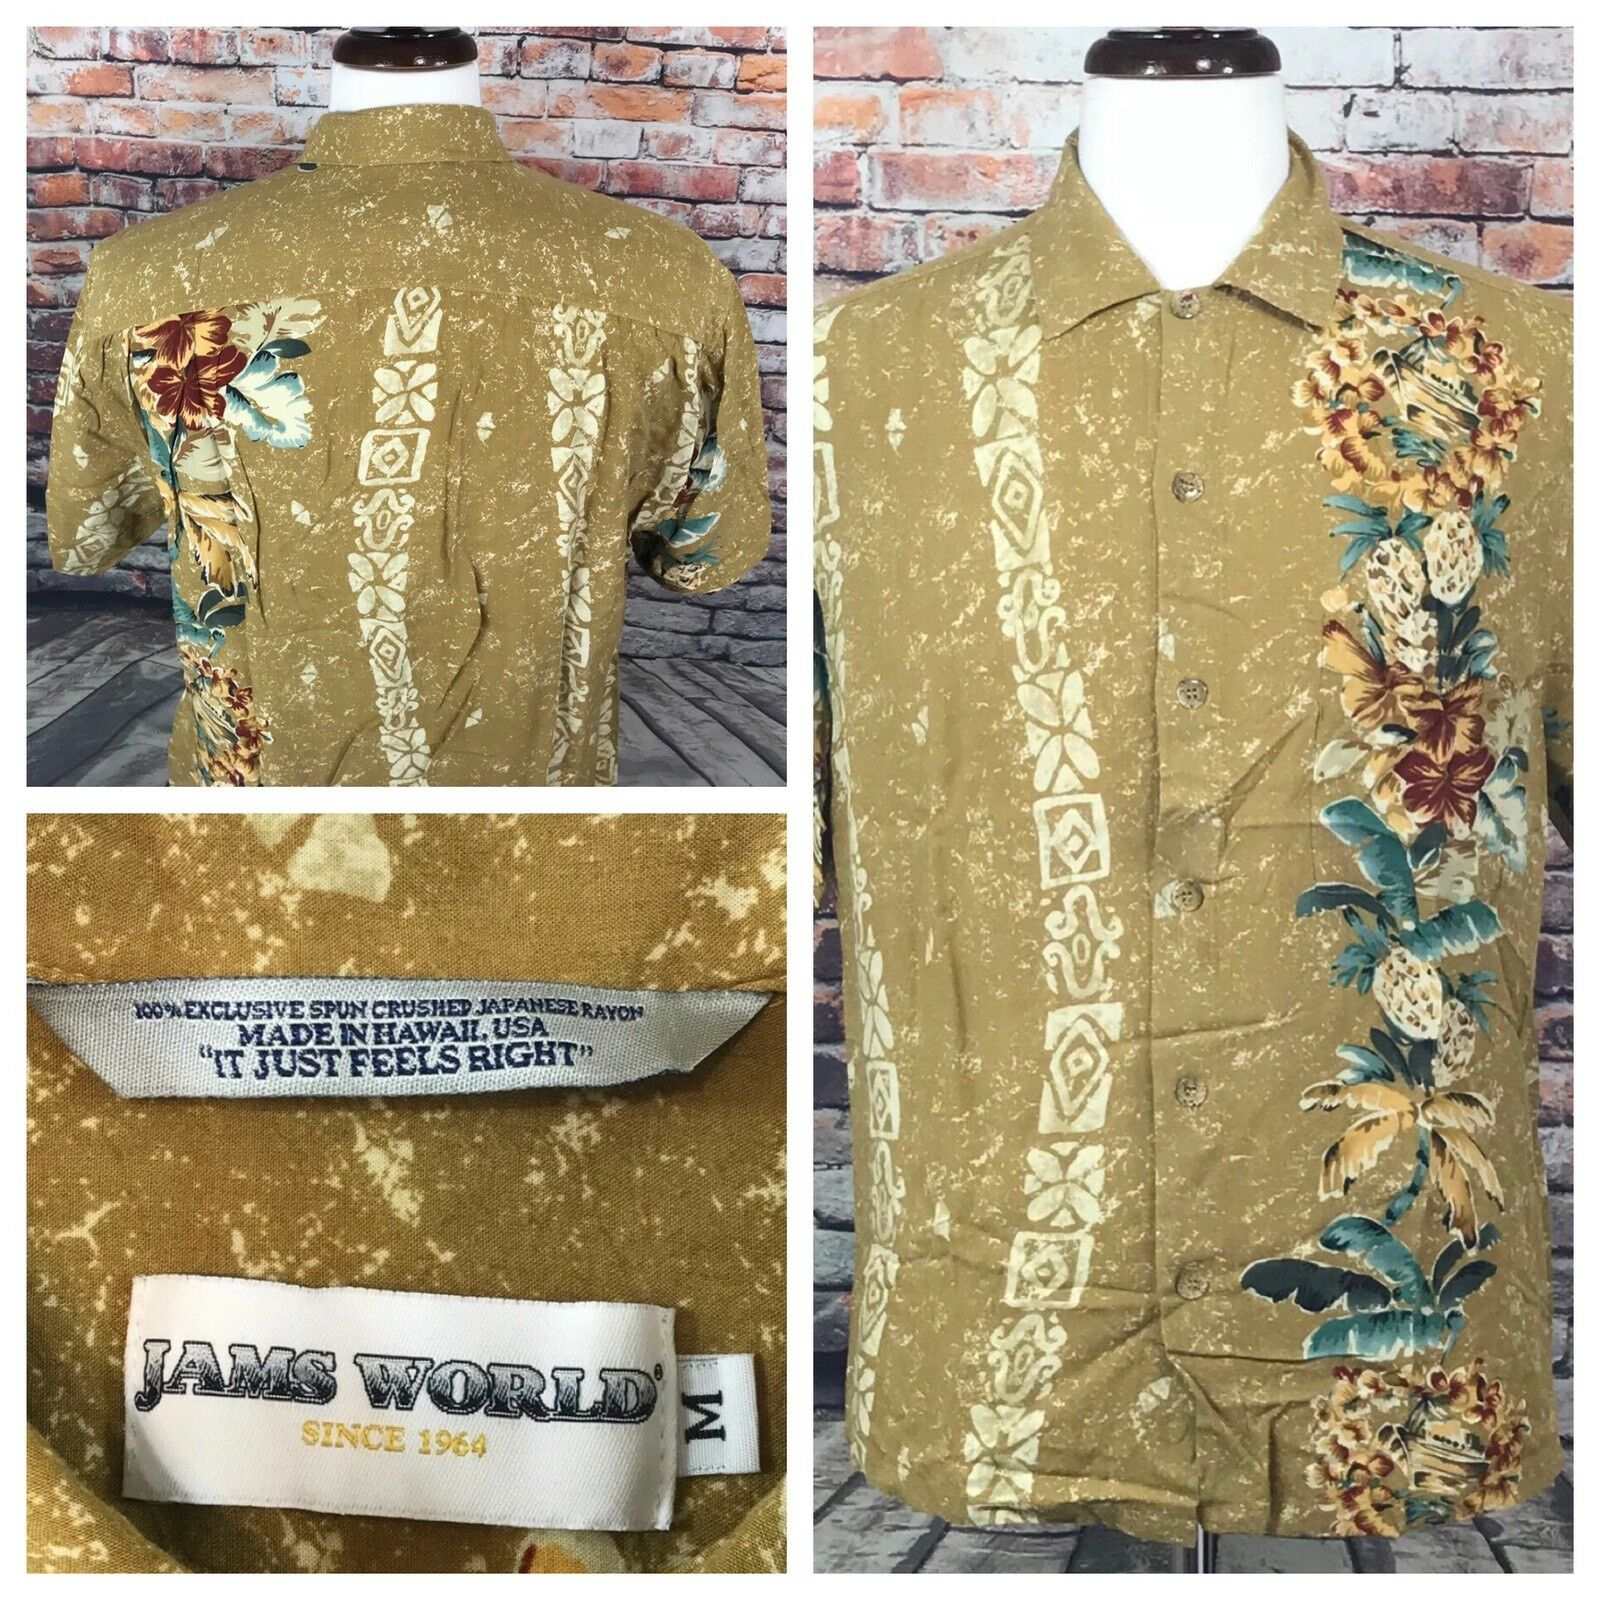 Jams World Hawaiian Floral it it Floral Just Feels Right Style Short Sleeve Uomo's Shirt M bc0c0e